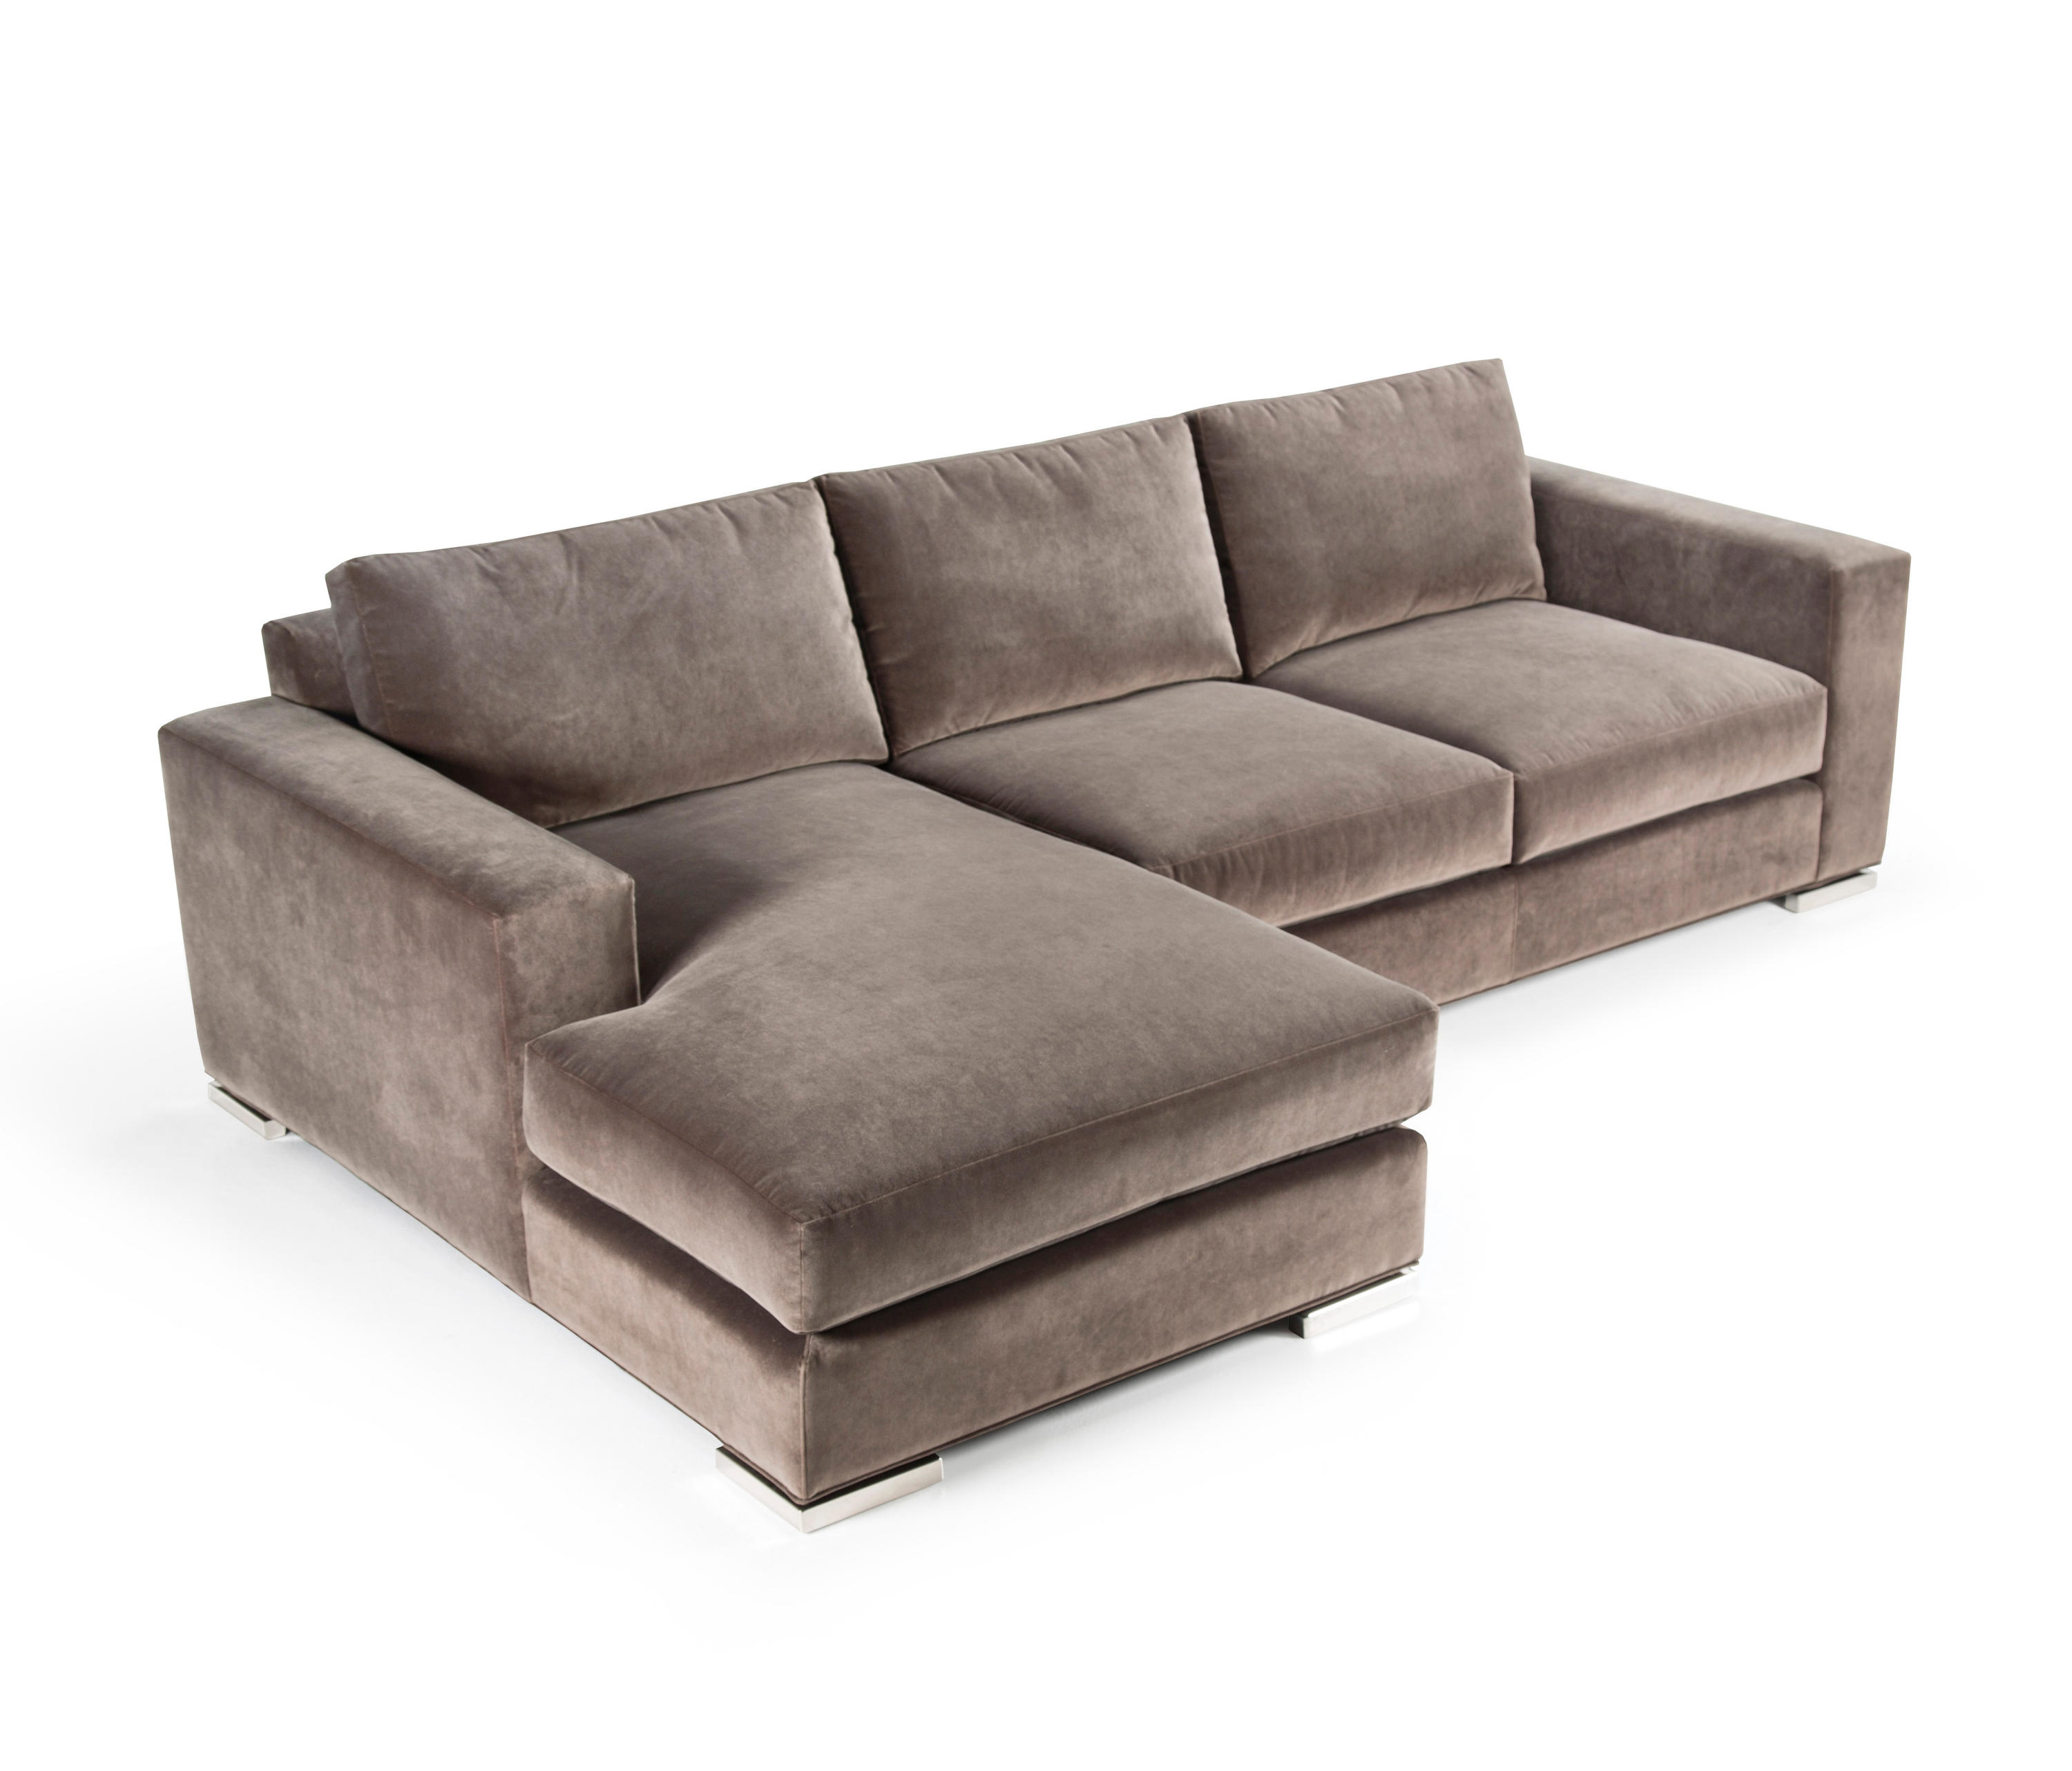 design grobania couch of cheap inspirational cover slipcover contemporary sofas grey sofa sectional new images luxury